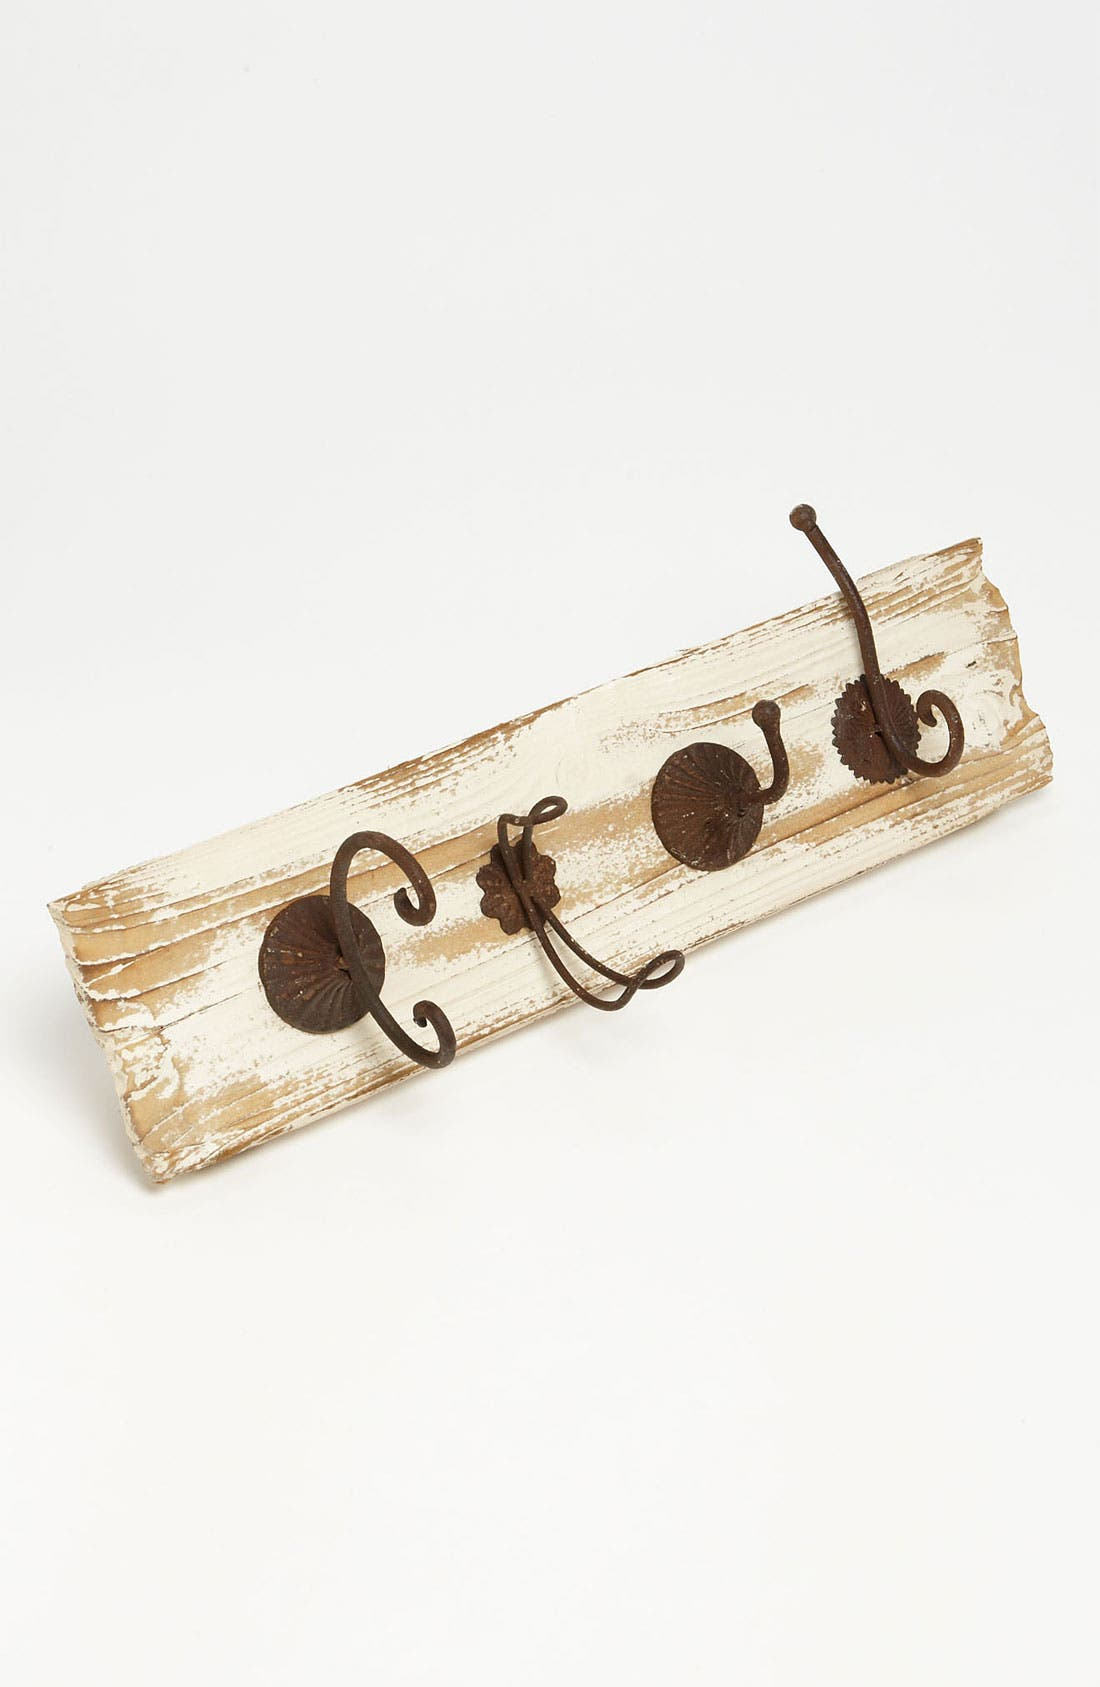 Alternate Image 1 Selected - Distressed Wood Coat Rack